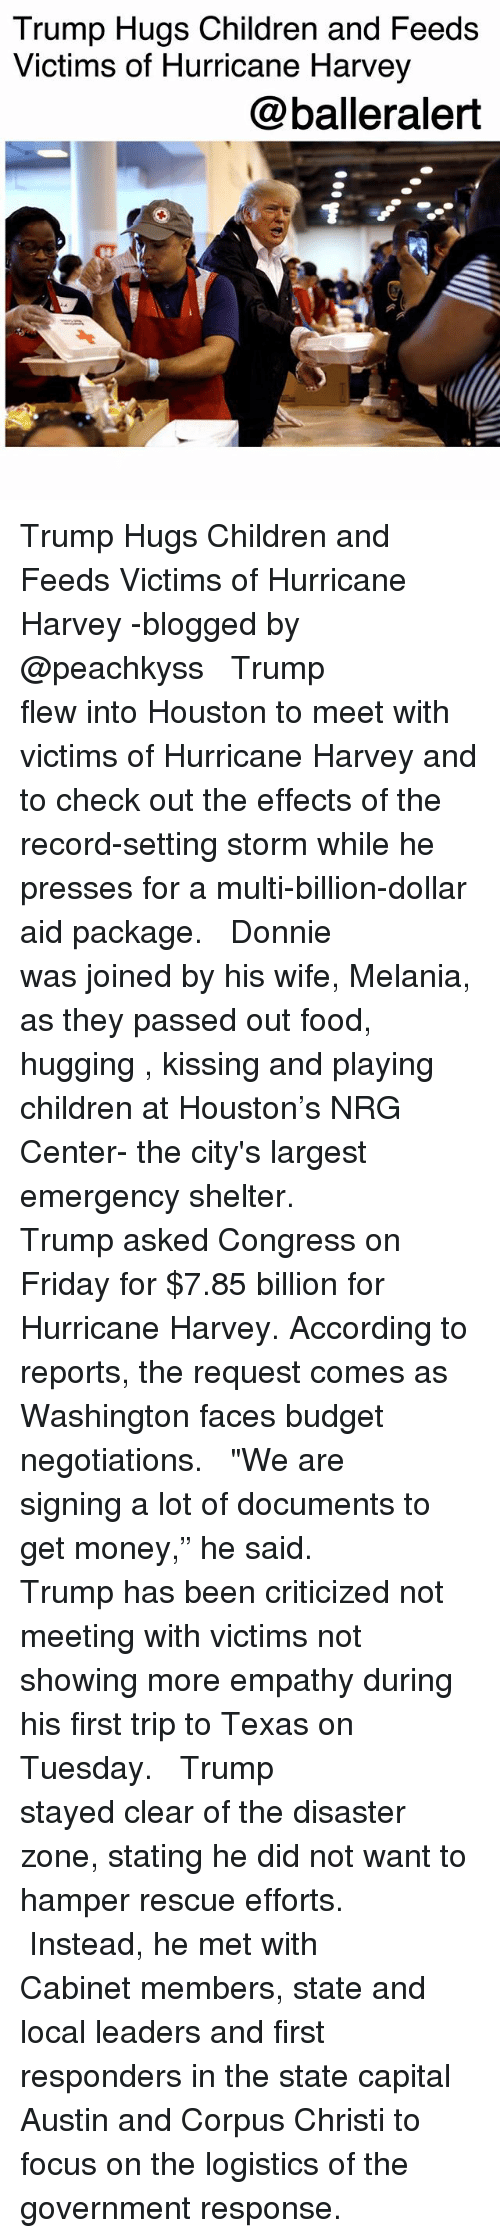 "Centere: Trump Hugs Children and Feeds  Victims of Hurricane Harvey  @balleralert Trump Hugs Children and Feeds Victims of Hurricane Harvey -blogged by @peachkyss ⠀⠀⠀⠀⠀⠀⠀ ⠀⠀⠀⠀⠀⠀⠀ Trump flew into Houston to meet with victims of Hurricane Harvey and to check out the effects of the record-setting storm while he presses for a multi-billion-dollar aid package. ⠀⠀⠀⠀⠀⠀⠀ ⠀⠀⠀⠀⠀⠀⠀ Donnie was joined by his wife, Melania, as they passed out food, hugging , kissing and playing children at Houston's NRG Center- the city's largest emergency shelter. ⠀⠀⠀⠀⠀⠀⠀ ⠀⠀⠀⠀⠀⠀⠀ Trump asked Congress on Friday for $7.85 billion for Hurricane Harvey. According to reports, the request comes as Washington faces budget negotiations. ⠀⠀⠀⠀⠀⠀⠀ ⠀⠀⠀⠀⠀⠀⠀ ""We are signing a lot of documents to get money,"" he said. ⠀⠀⠀⠀⠀⠀⠀ ⠀⠀⠀⠀⠀⠀⠀ Trump has been criticized not meeting with victims not showing more empathy during his first trip to Texas on Tuesday. ⠀⠀⠀⠀⠀⠀⠀ ⠀⠀⠀⠀⠀⠀⠀ Trump stayed clear of the disaster zone, stating he did not want to hamper rescue efforts. ⠀⠀⠀⠀⠀⠀⠀ ⠀⠀⠀⠀⠀⠀⠀ Instead, he met with Cabinet members, state and local leaders and first responders in the state capital Austin and Corpus Christi to focus on the logistics of the government response."